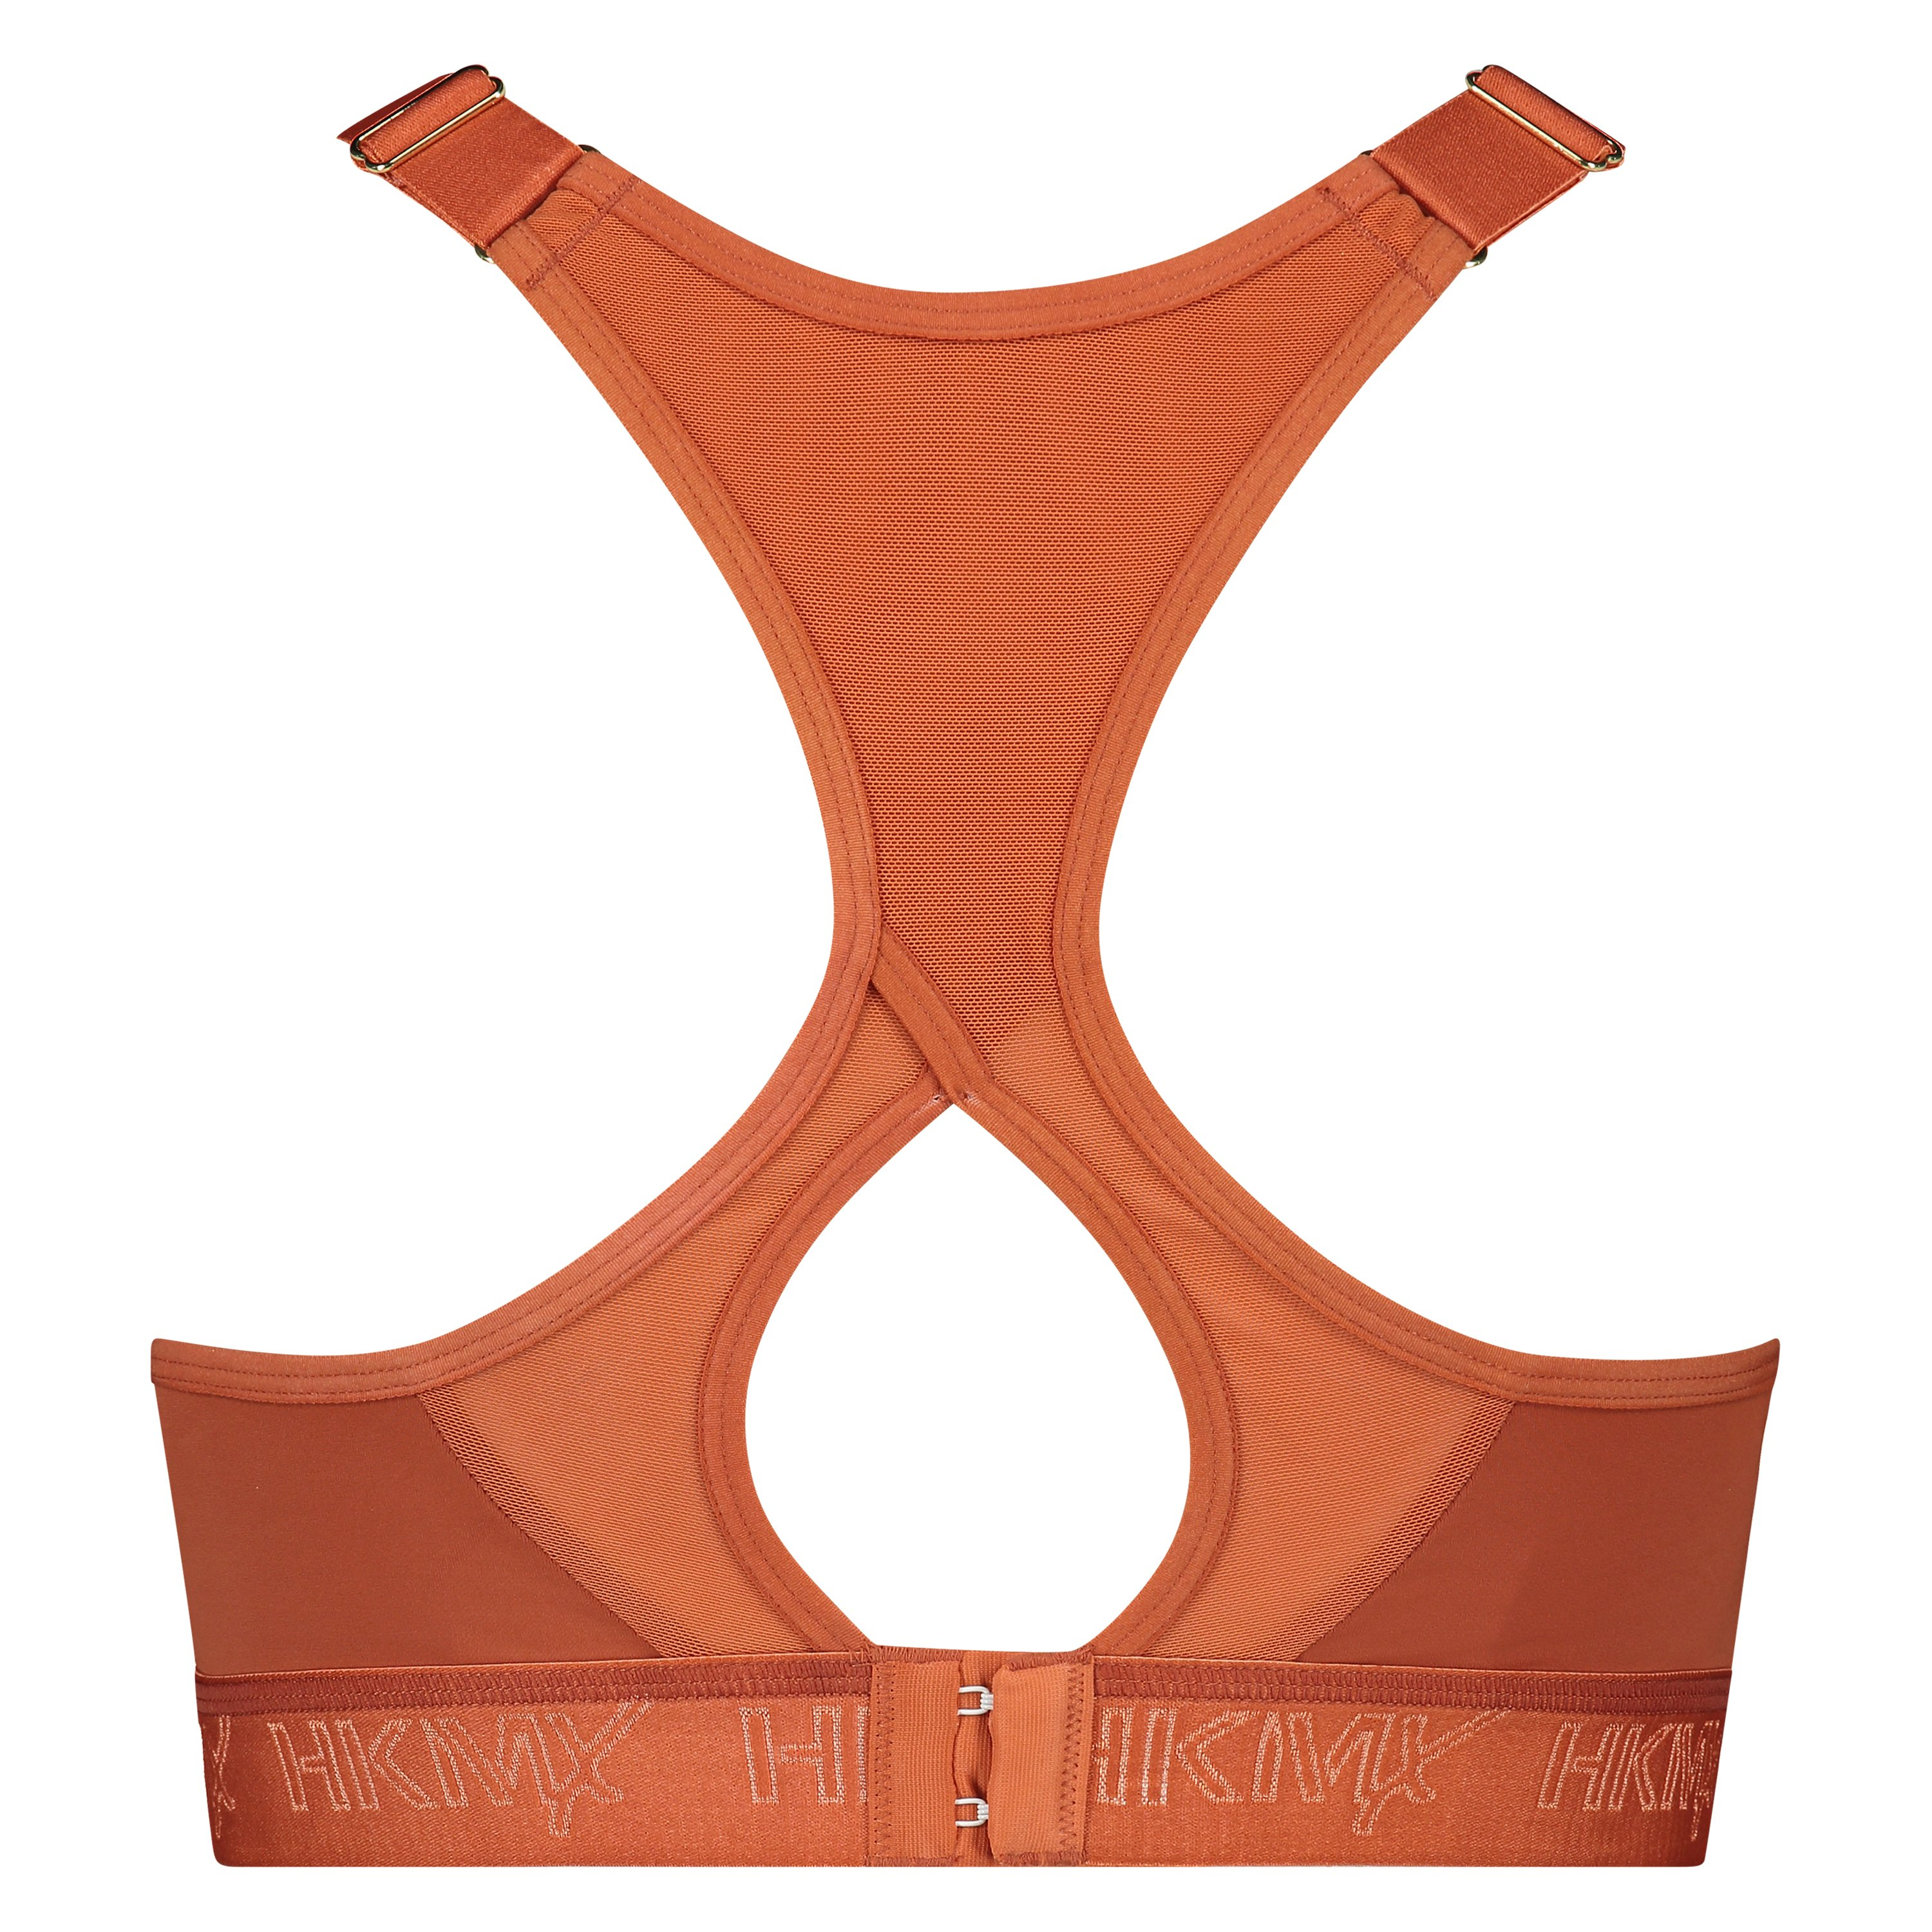 HKMX Sports bra The All Star Level 2, Brown, main